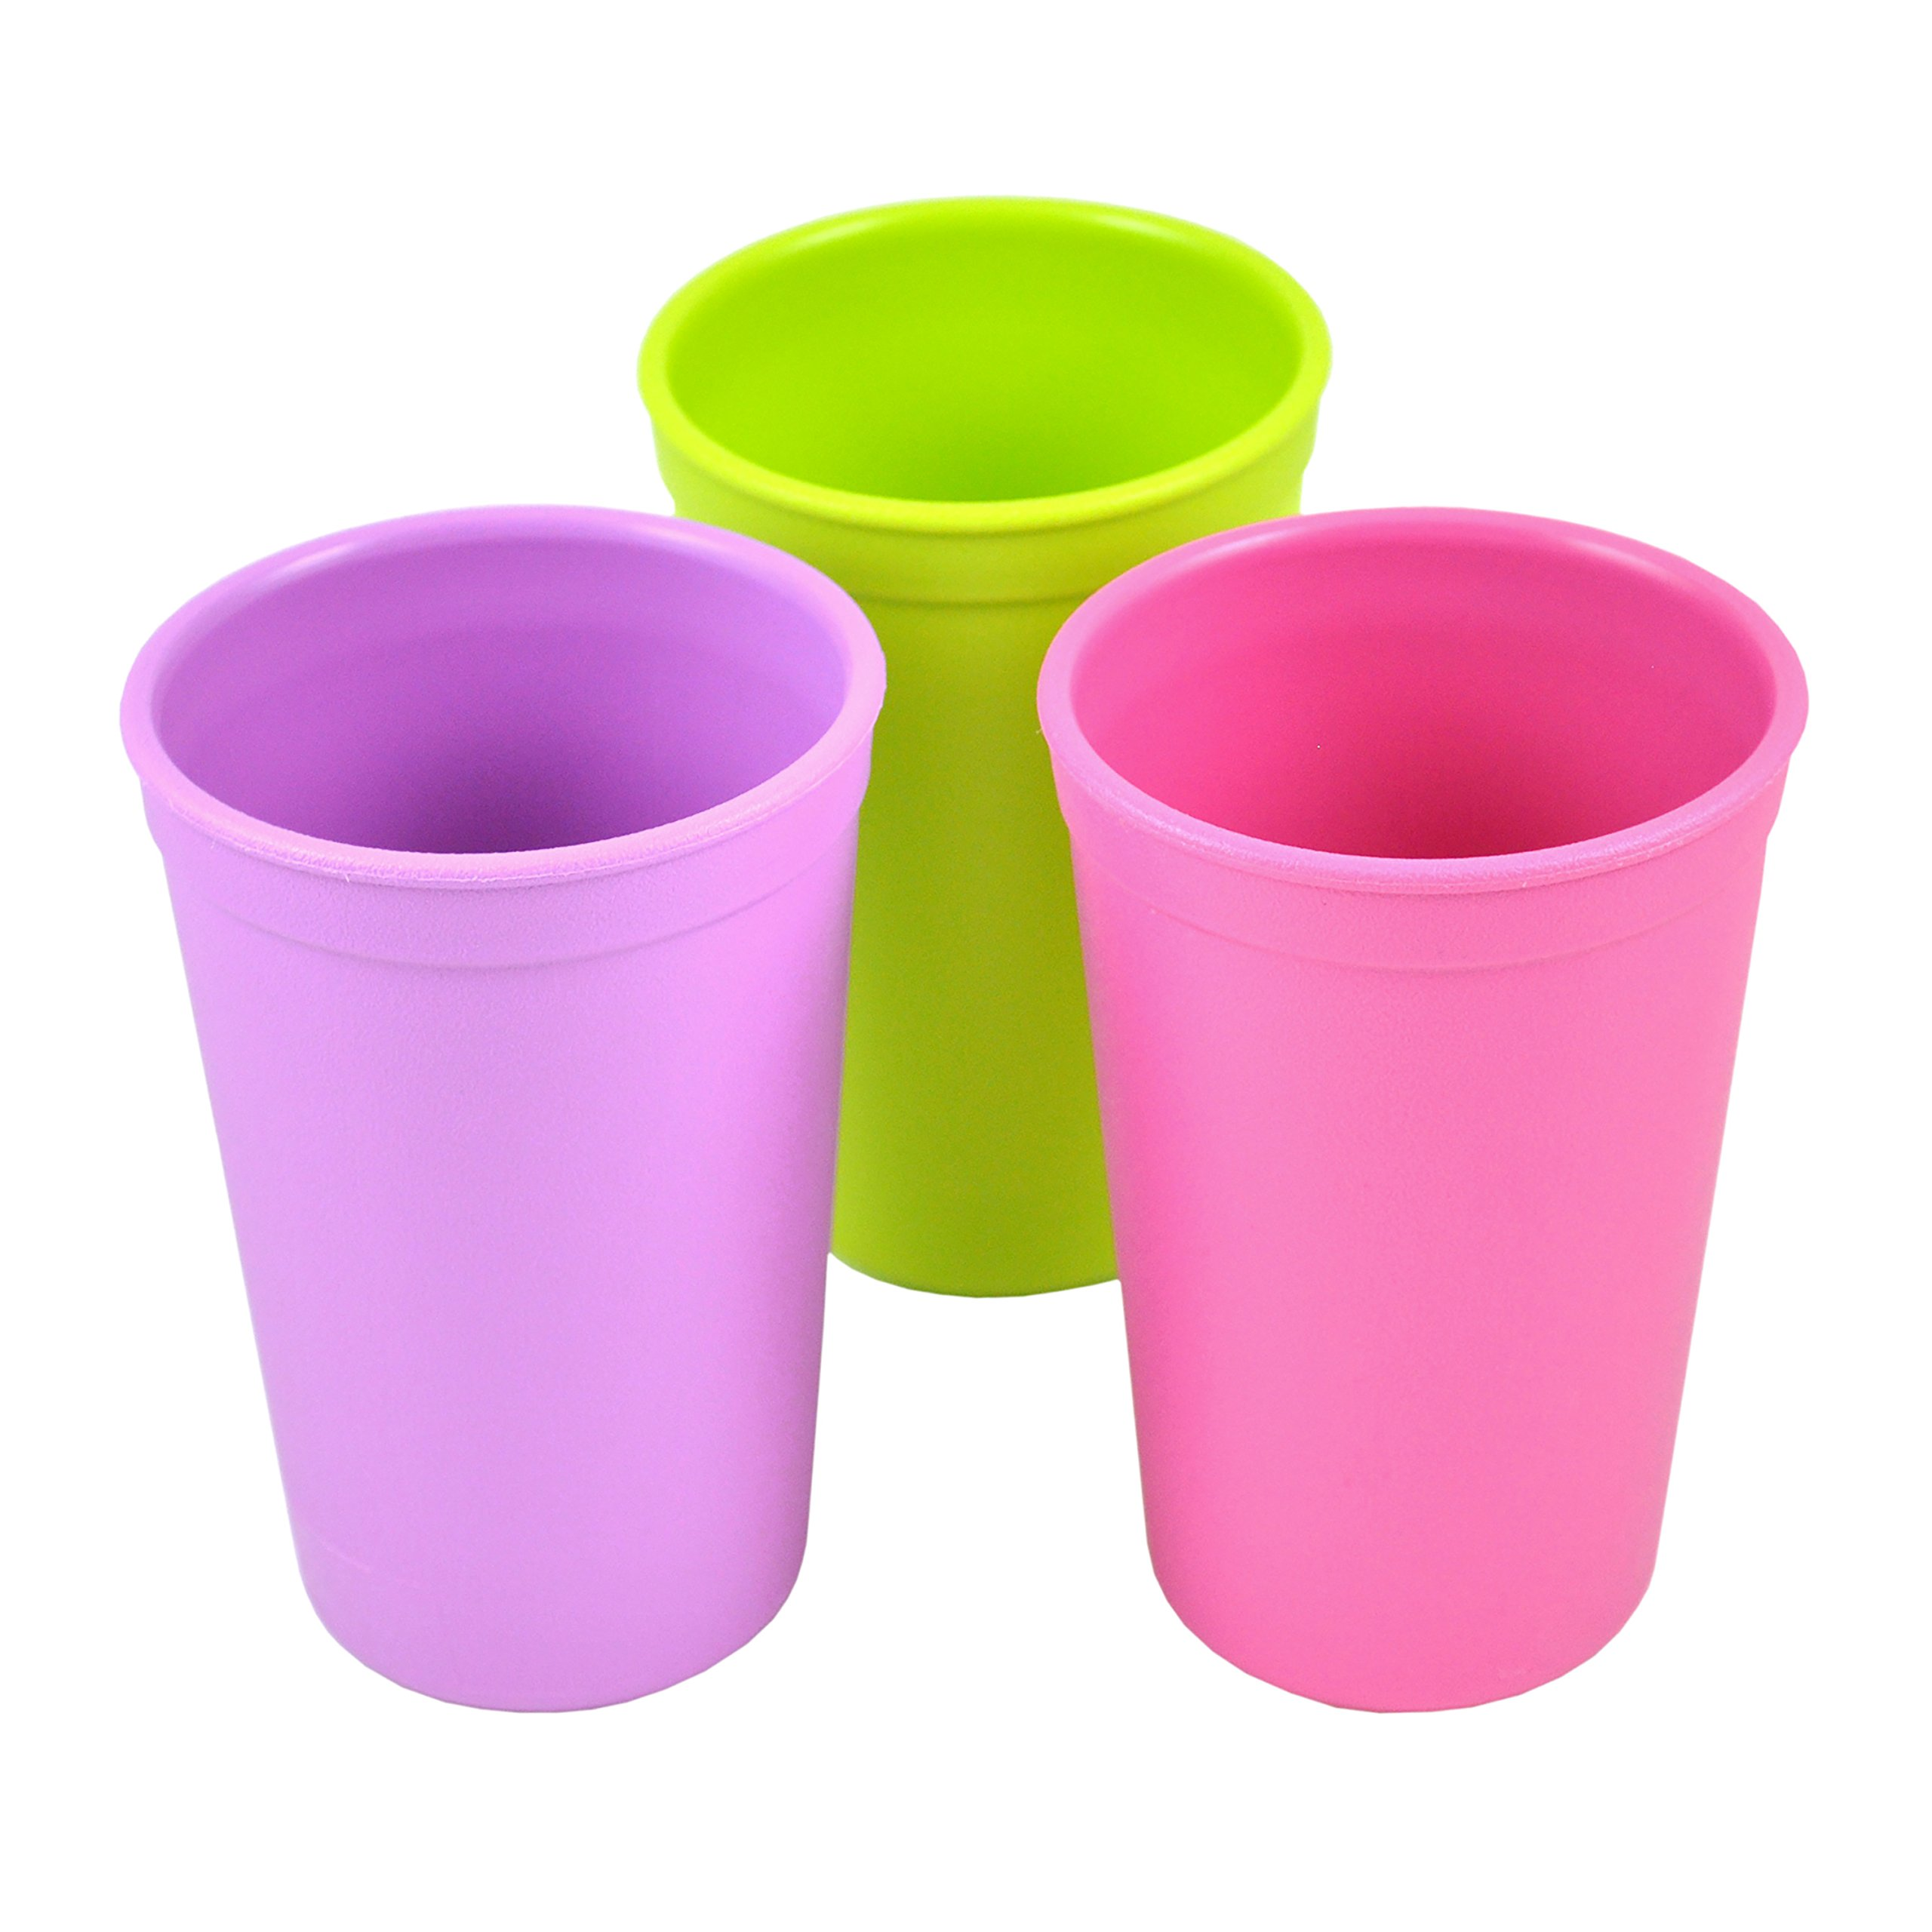 Re-Play Made in the USA 3pk Drinking Cups for Baby and Toddler - Purple, Green, Bright Pink (Butterfly)